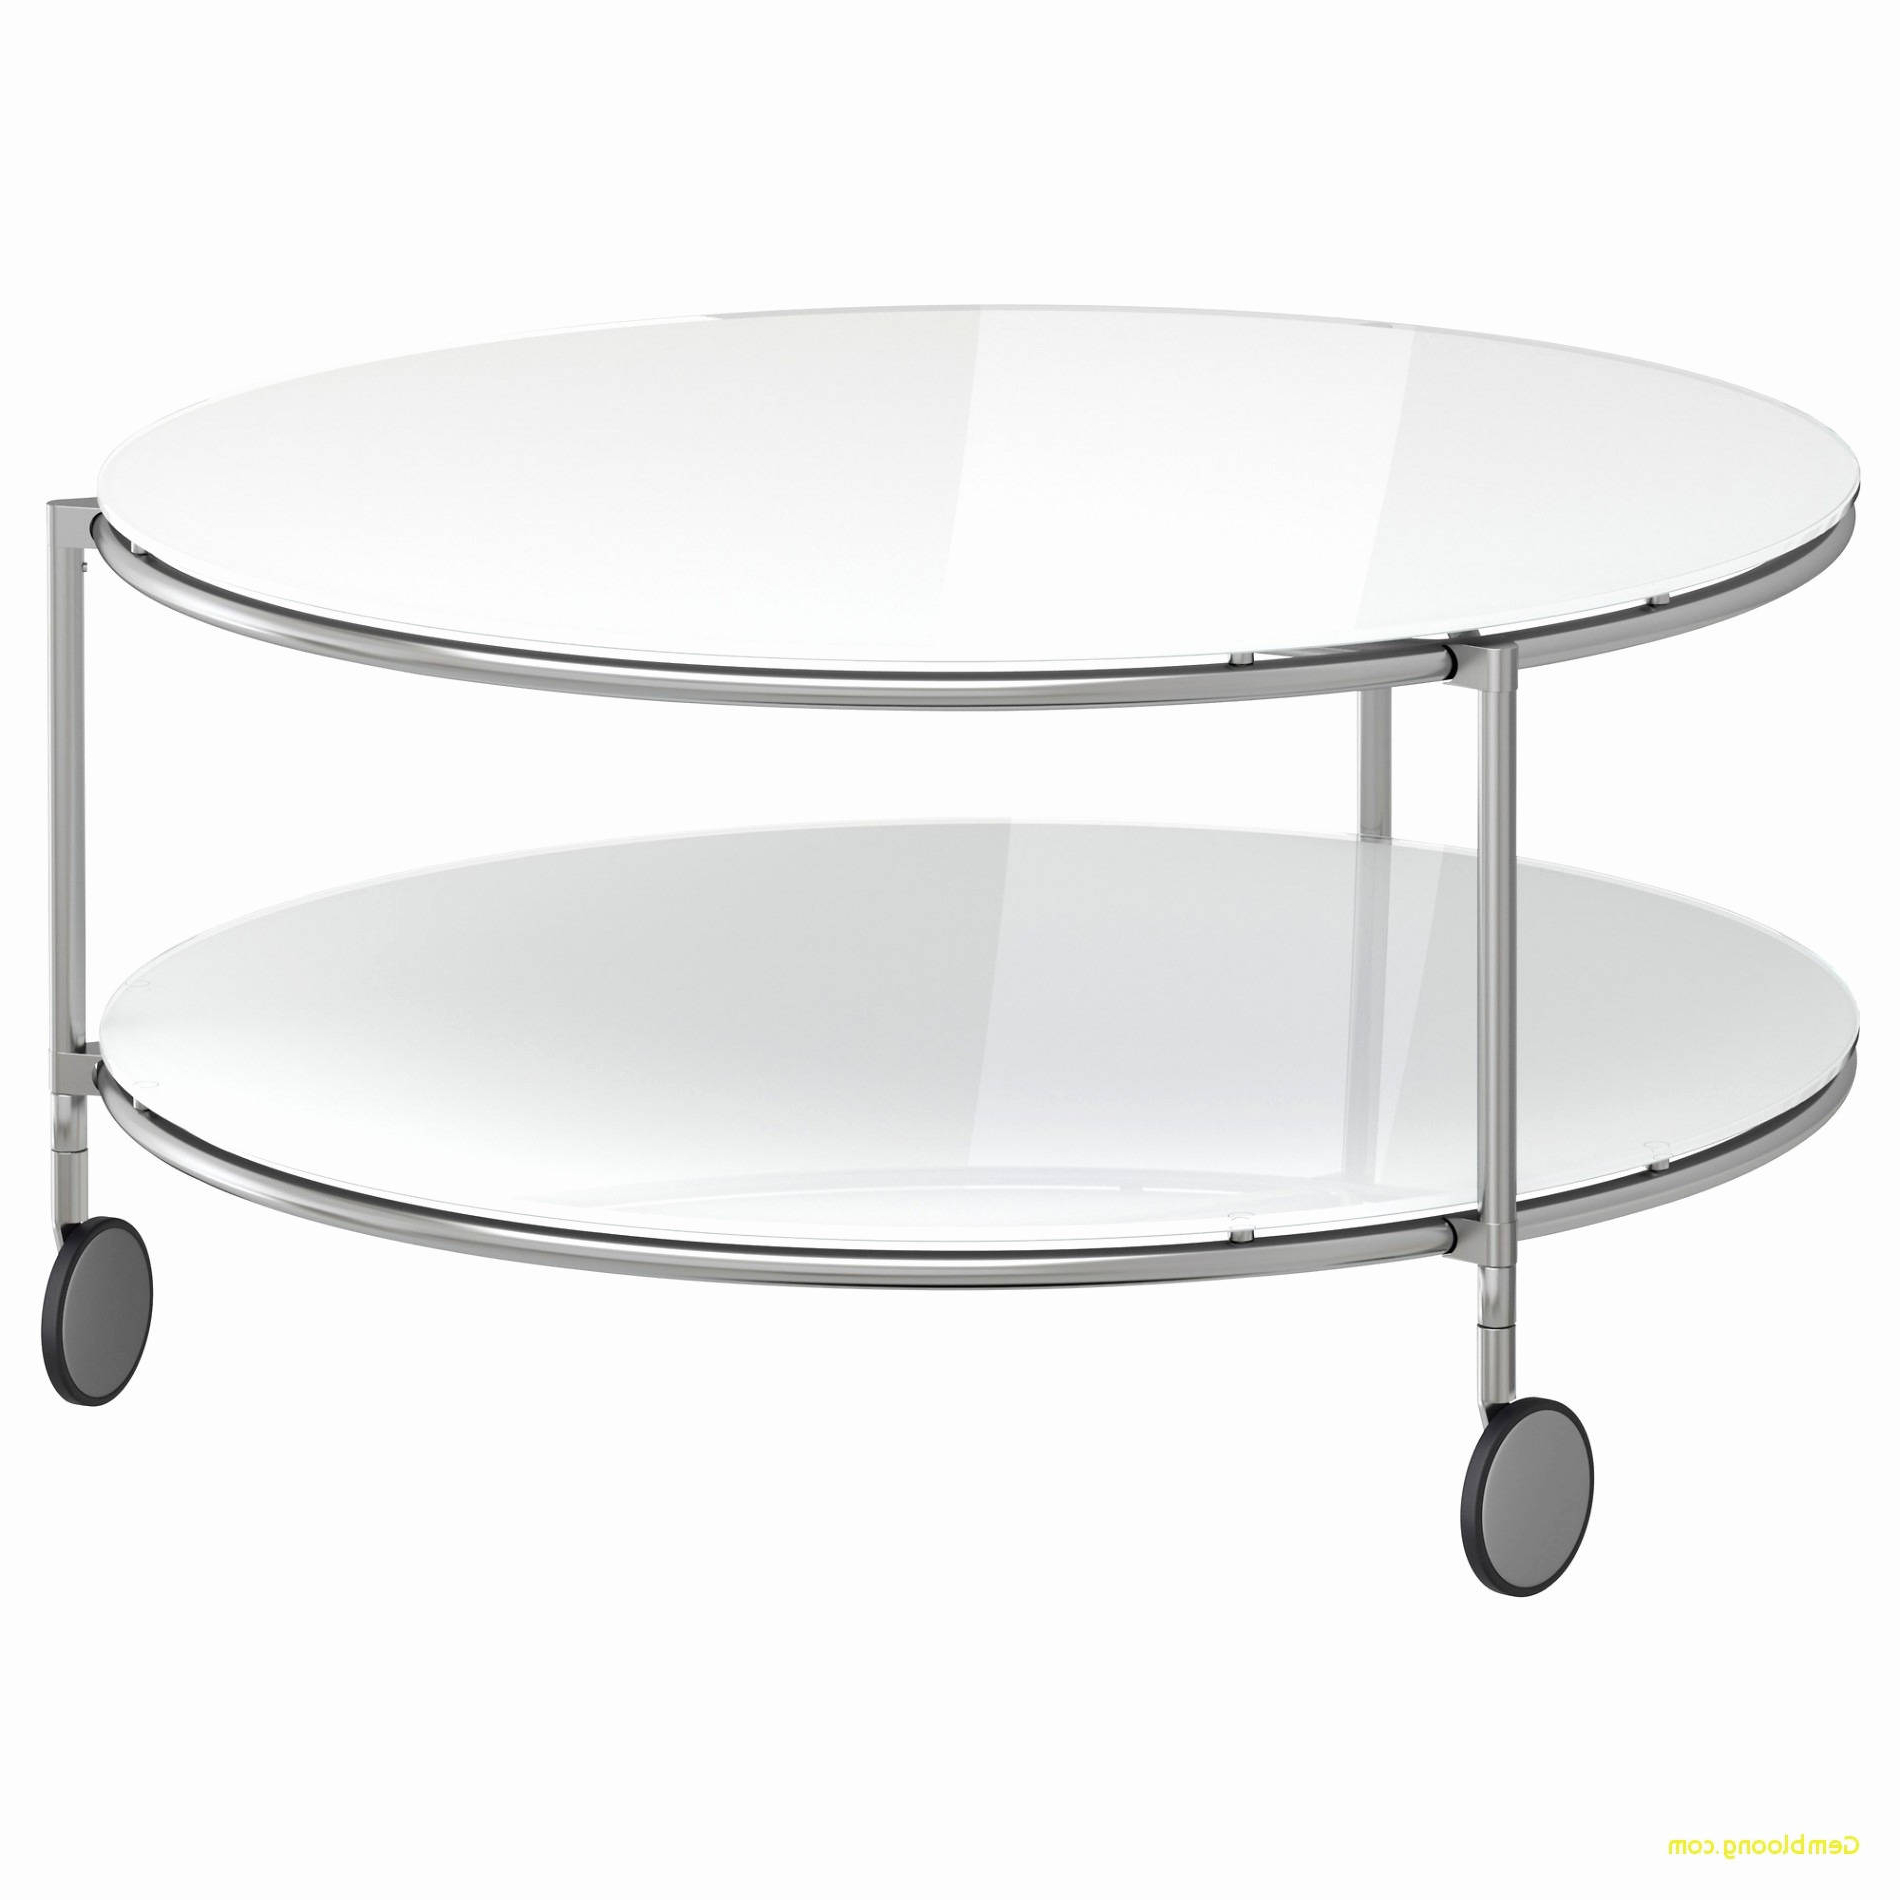 Most Popular Peekaboo Acrylic Coffee Table New 21 Magnificent Marble Top Table Inside Peekaboo Acrylic Tall Coffee Tables (View 17 of 20)